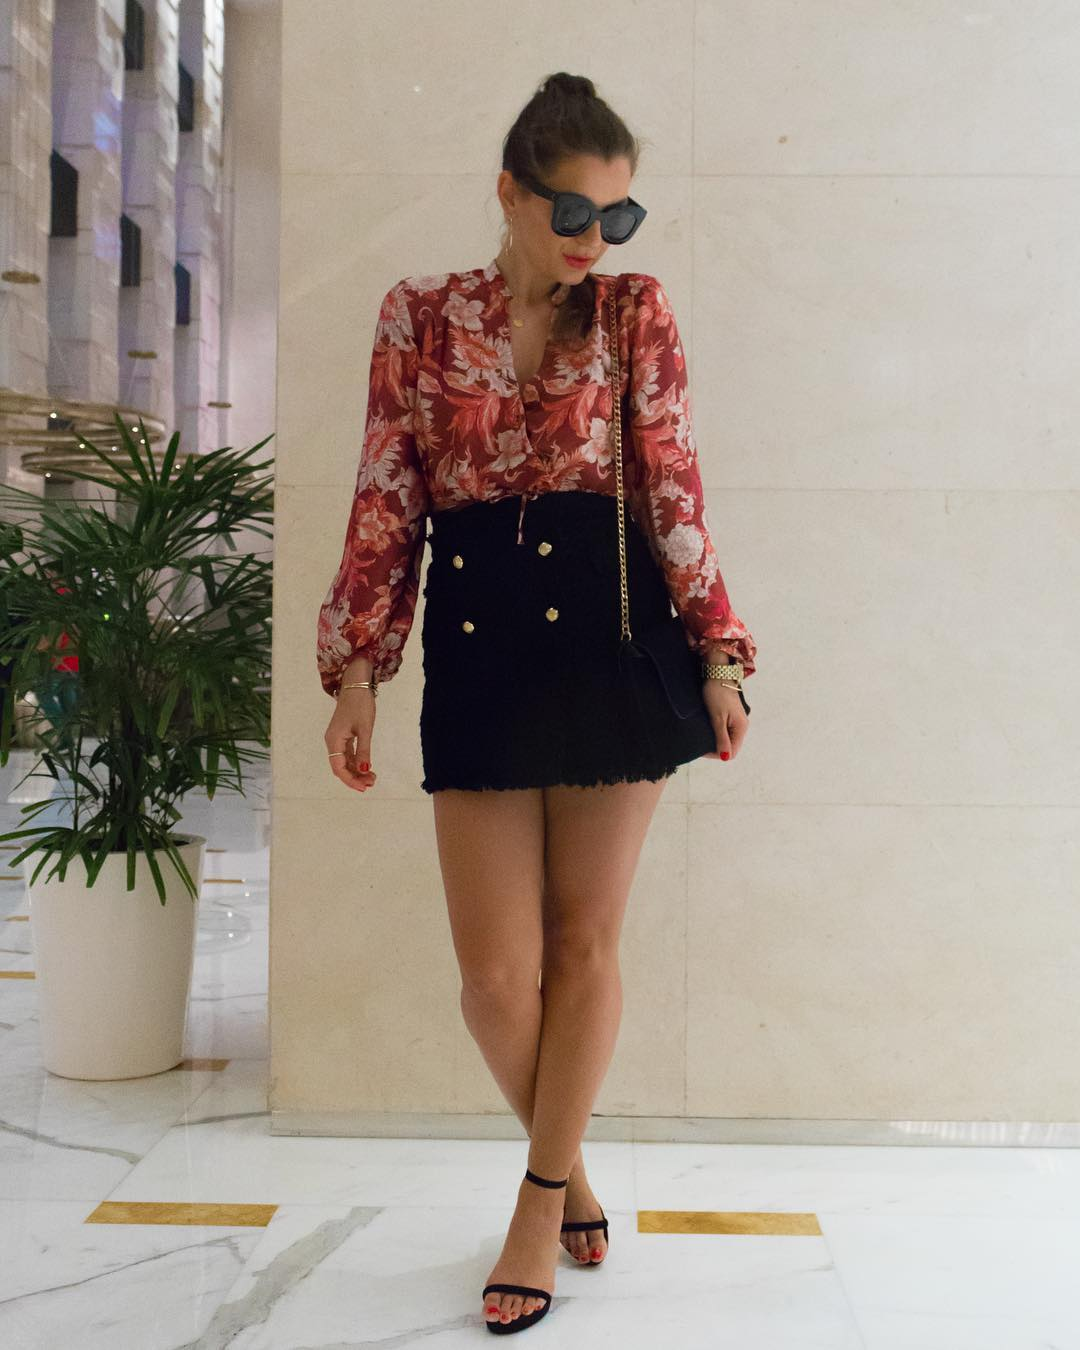 Eye-Catching Floral Top With Short Skirt